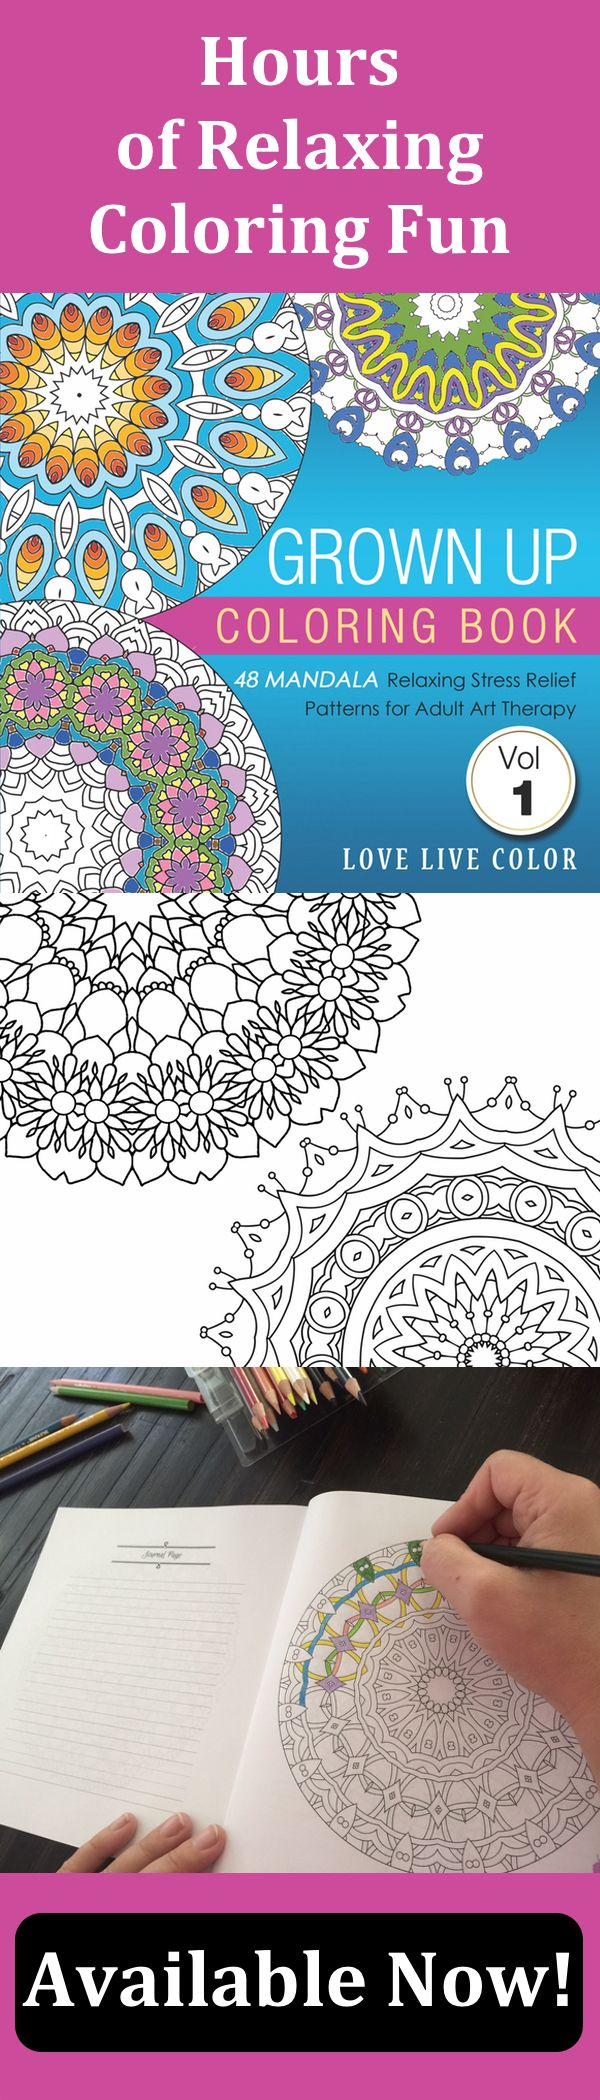 103 best coloring pages images on pinterest coloring books